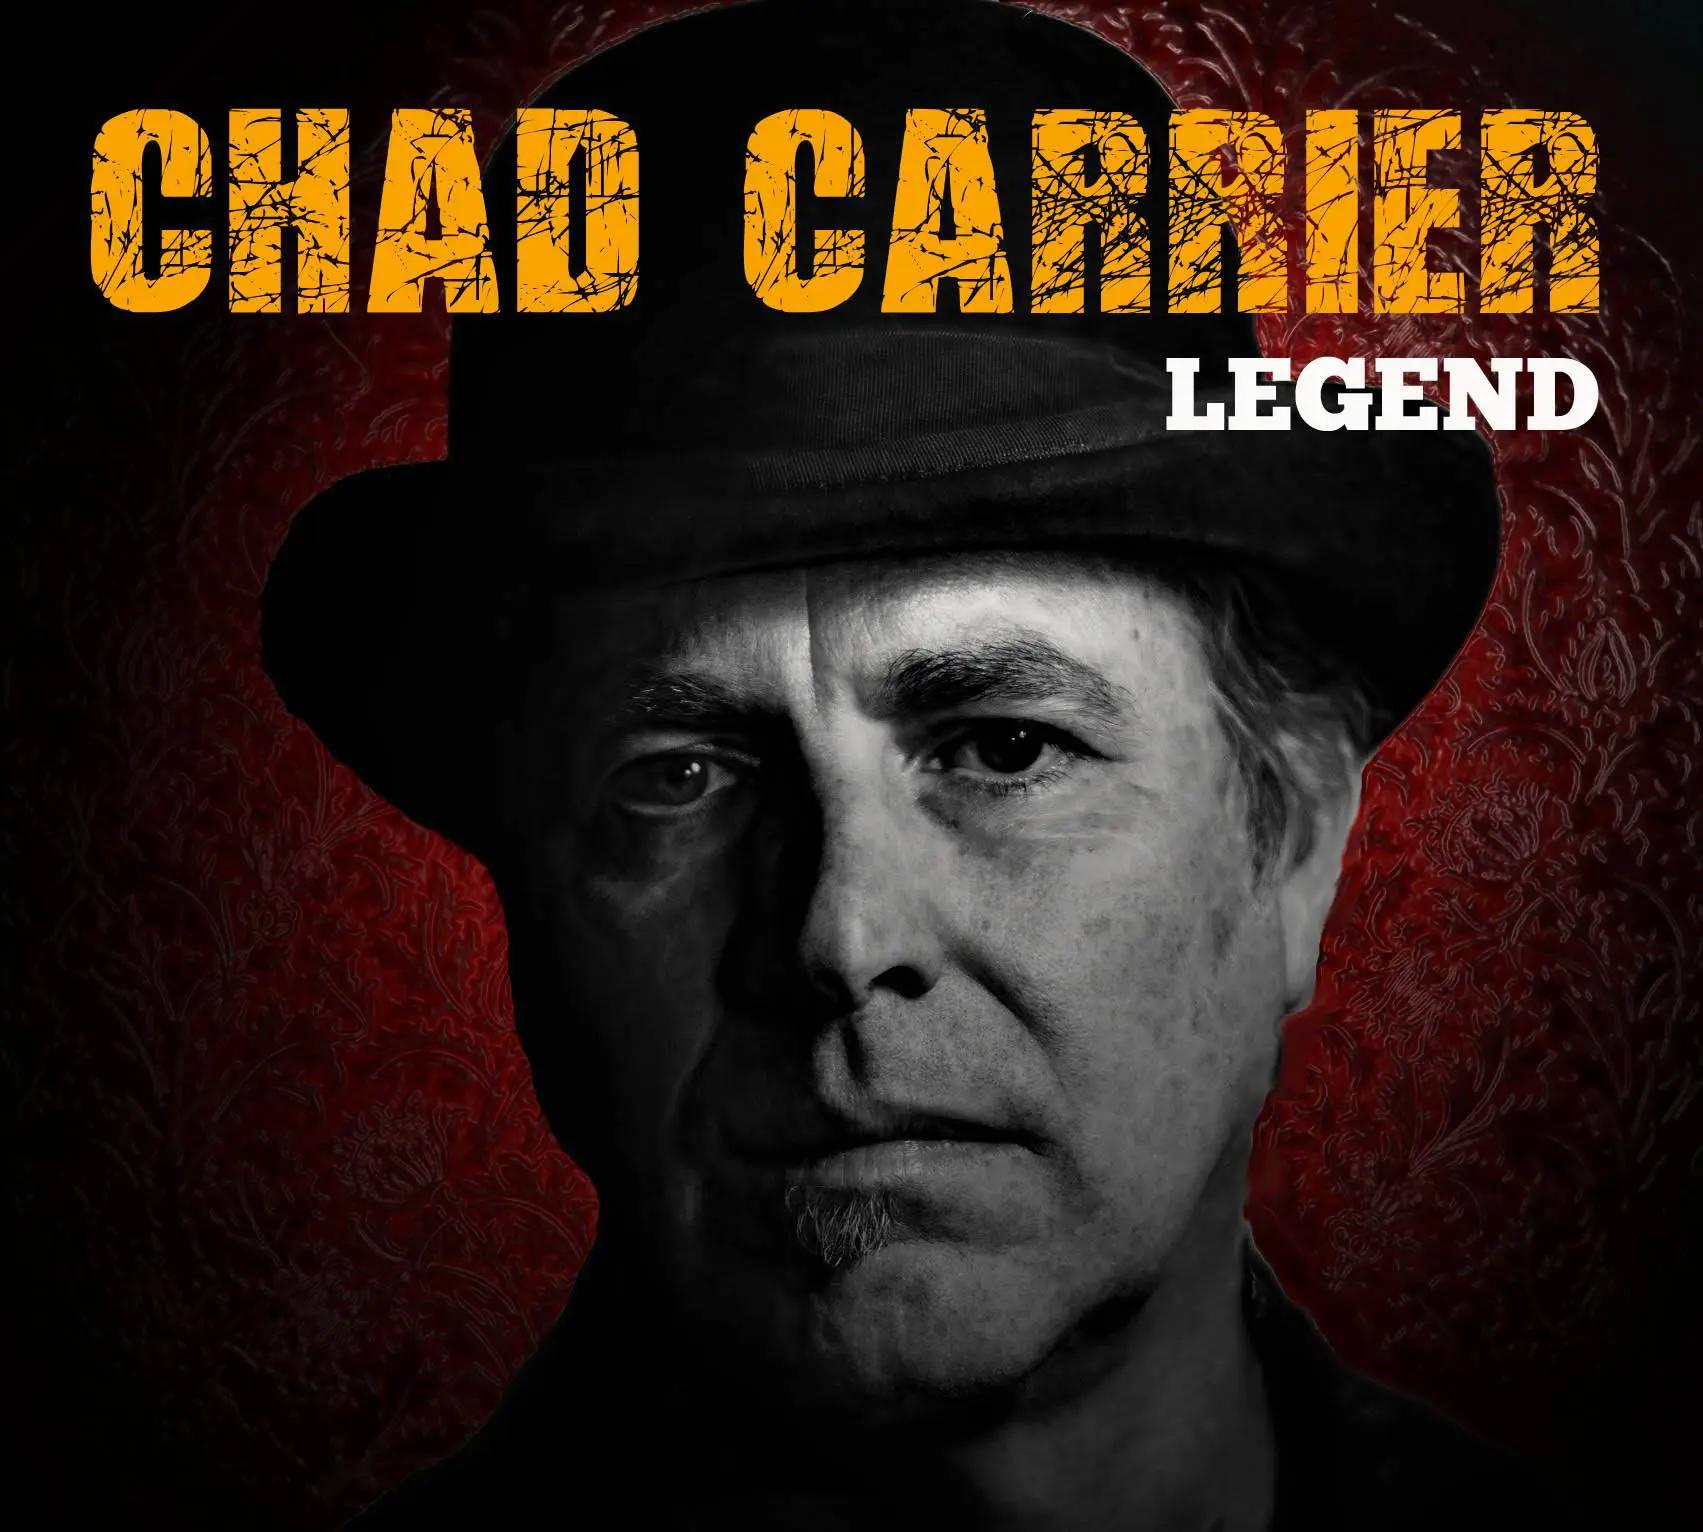 Chad Carrier Delivers With 'Legend'